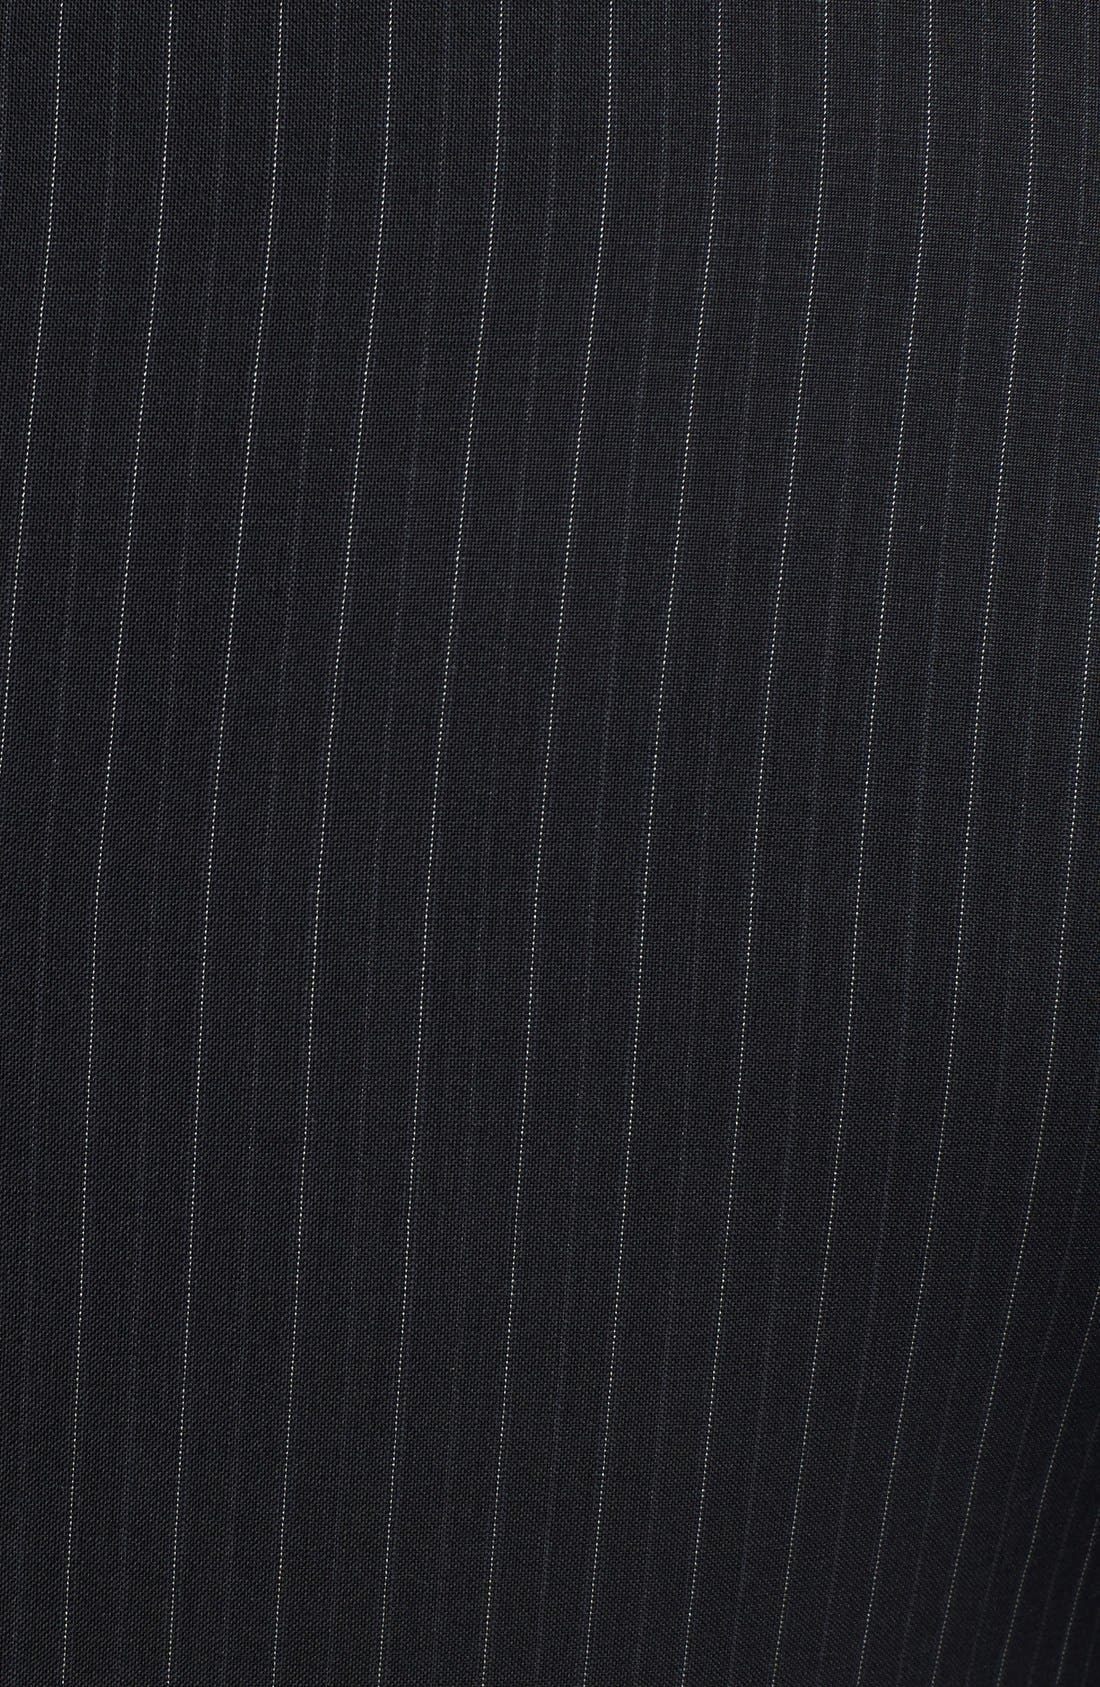 Alternate Image 5  - Dolce&Gabbana 'Martini' Black Stripe Wool Suit